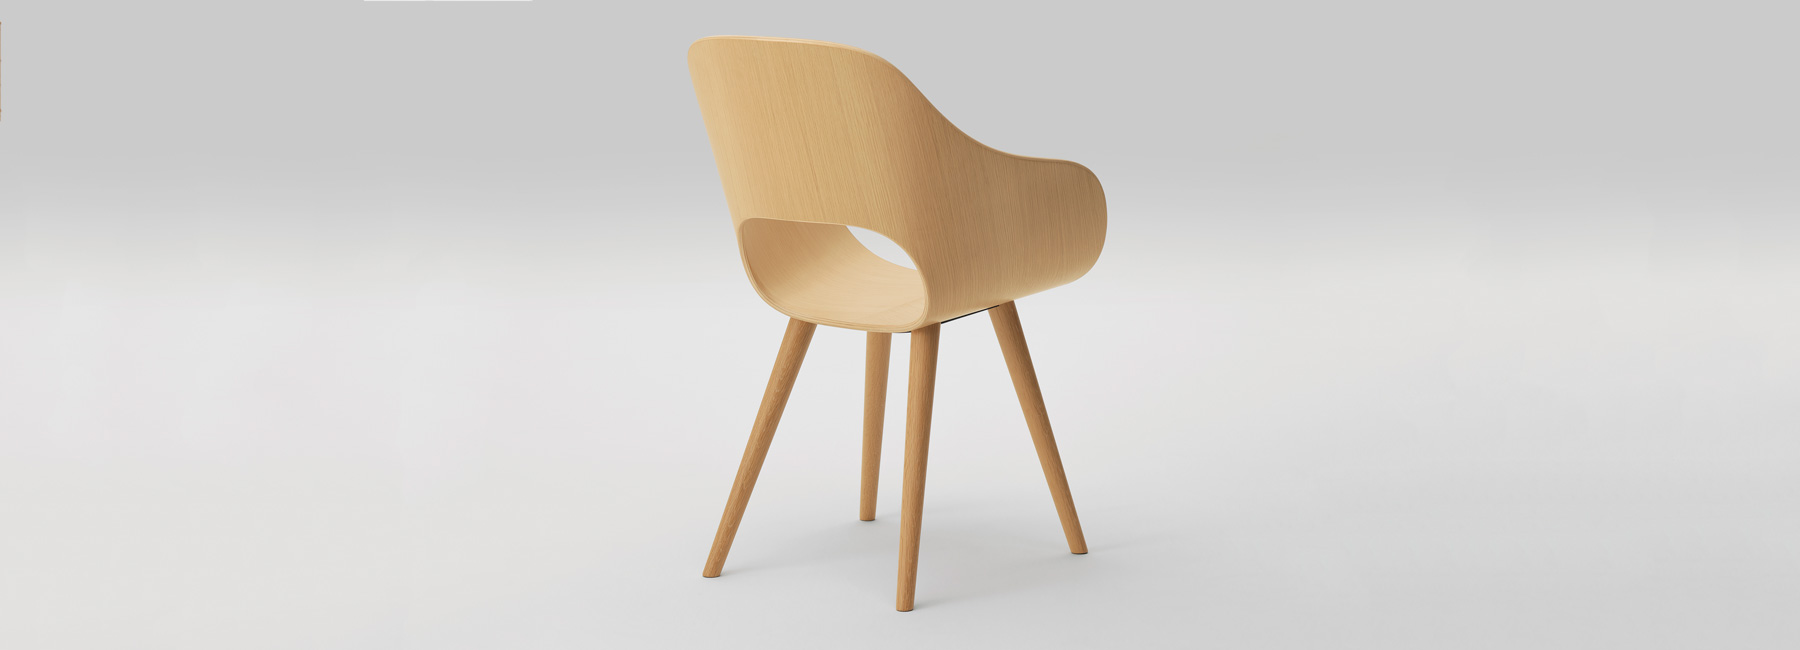 wooden chairs pictures wayfair club maruni celebrates 90th with by naoto fukasawa and jasper morrison 90 years